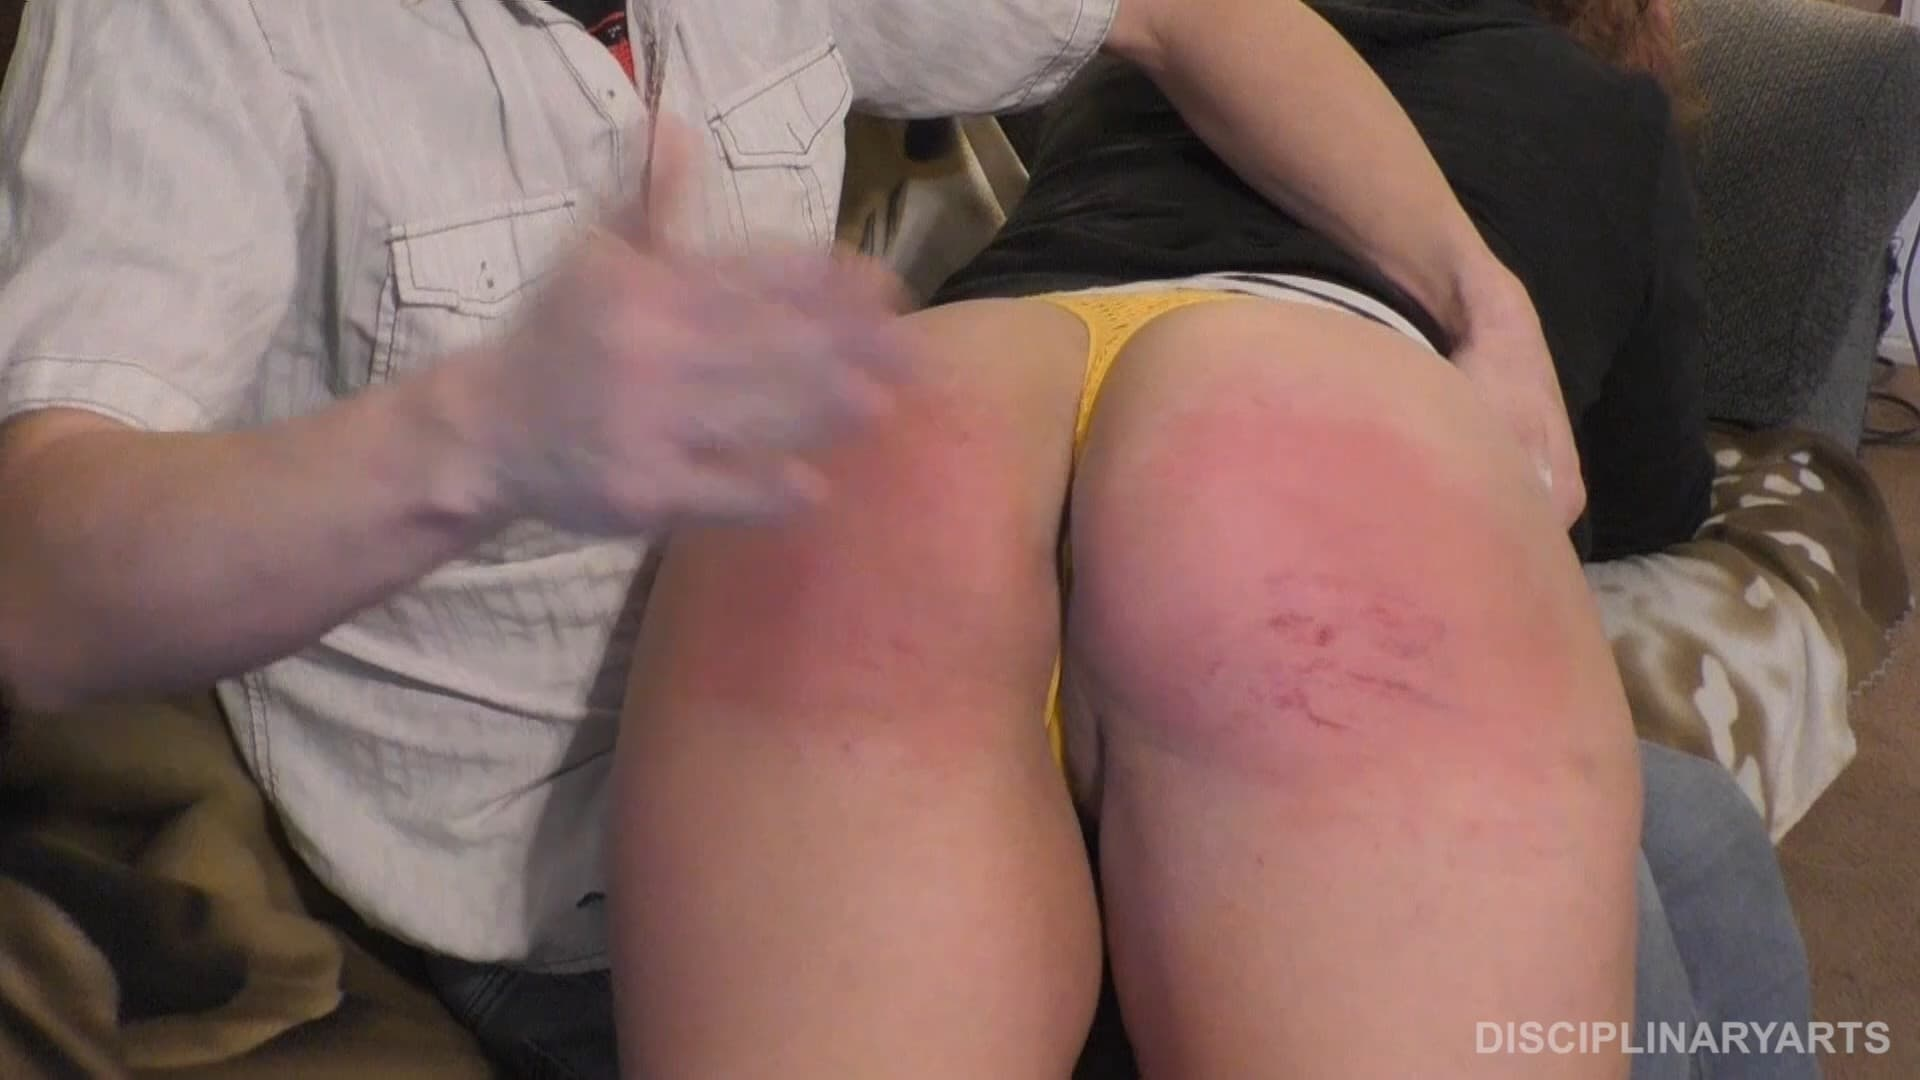 Disciplinary Arts – MP4/Full HD – Kyle Johnson, Roxxy – Roxxy's First Spanking